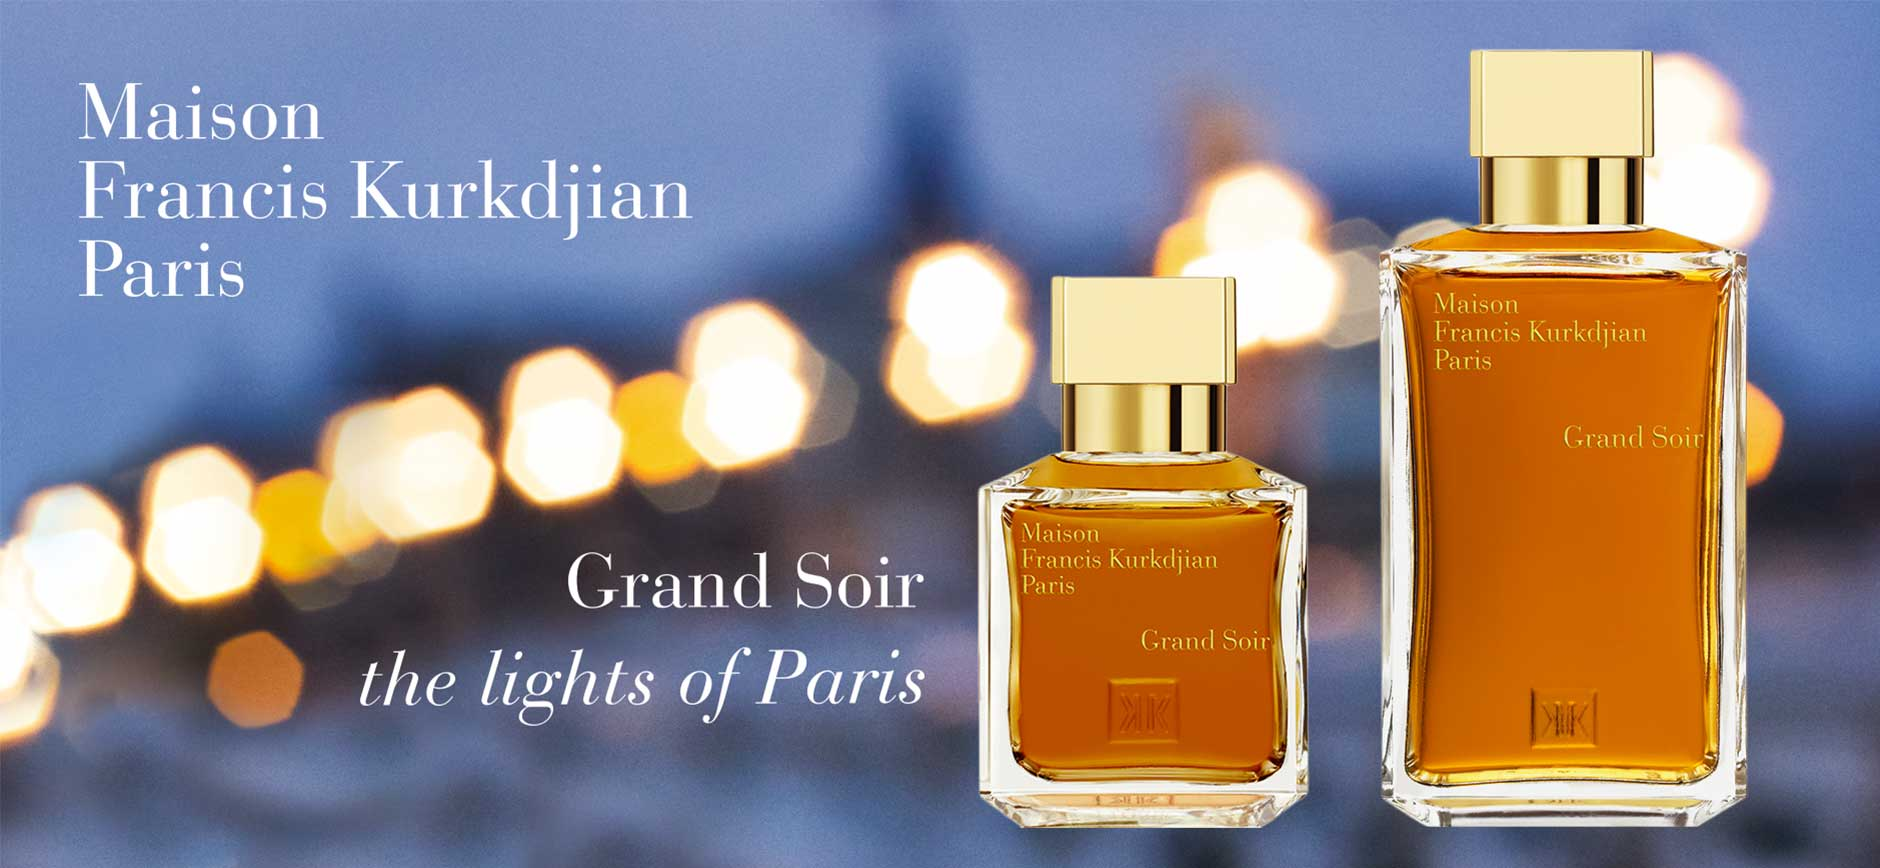 Maison Francis Kurkdjian Paris: Grand Soir - the lights of Paris